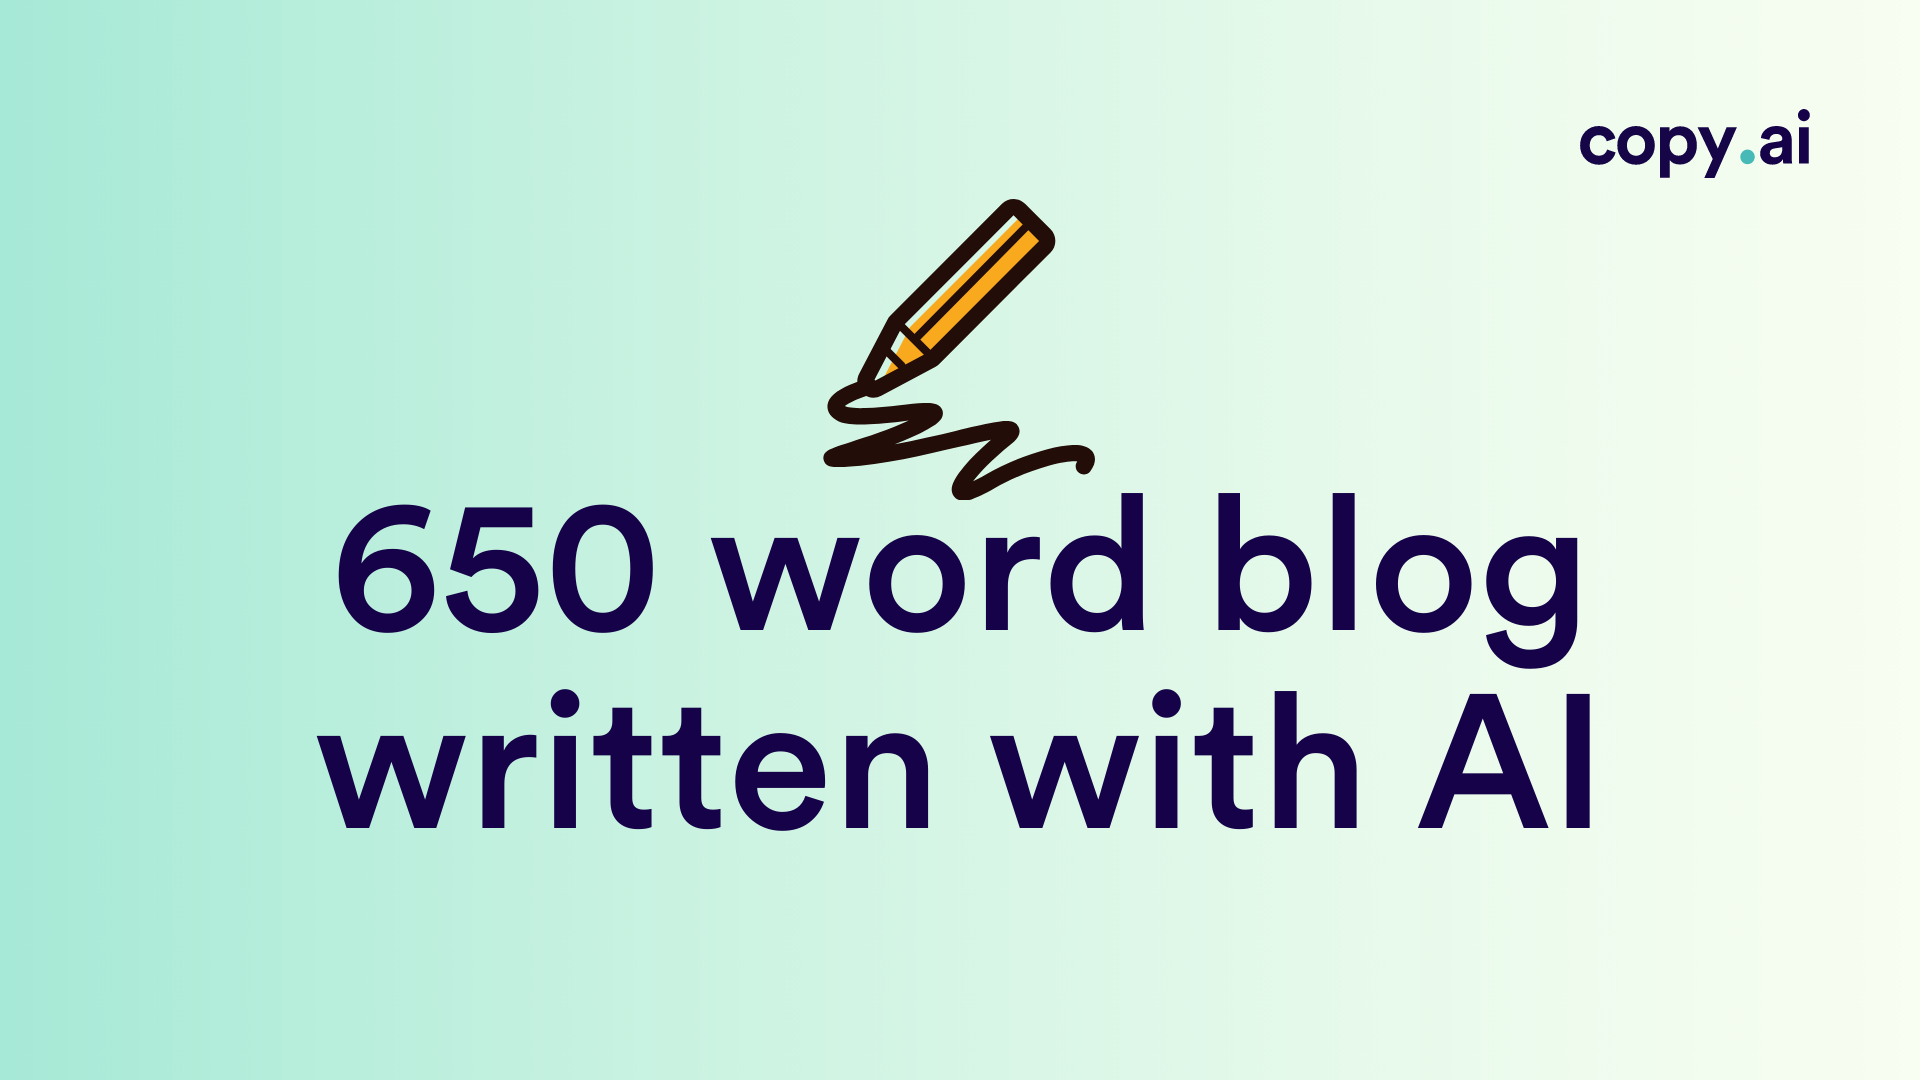 650 word blog written with AI.png